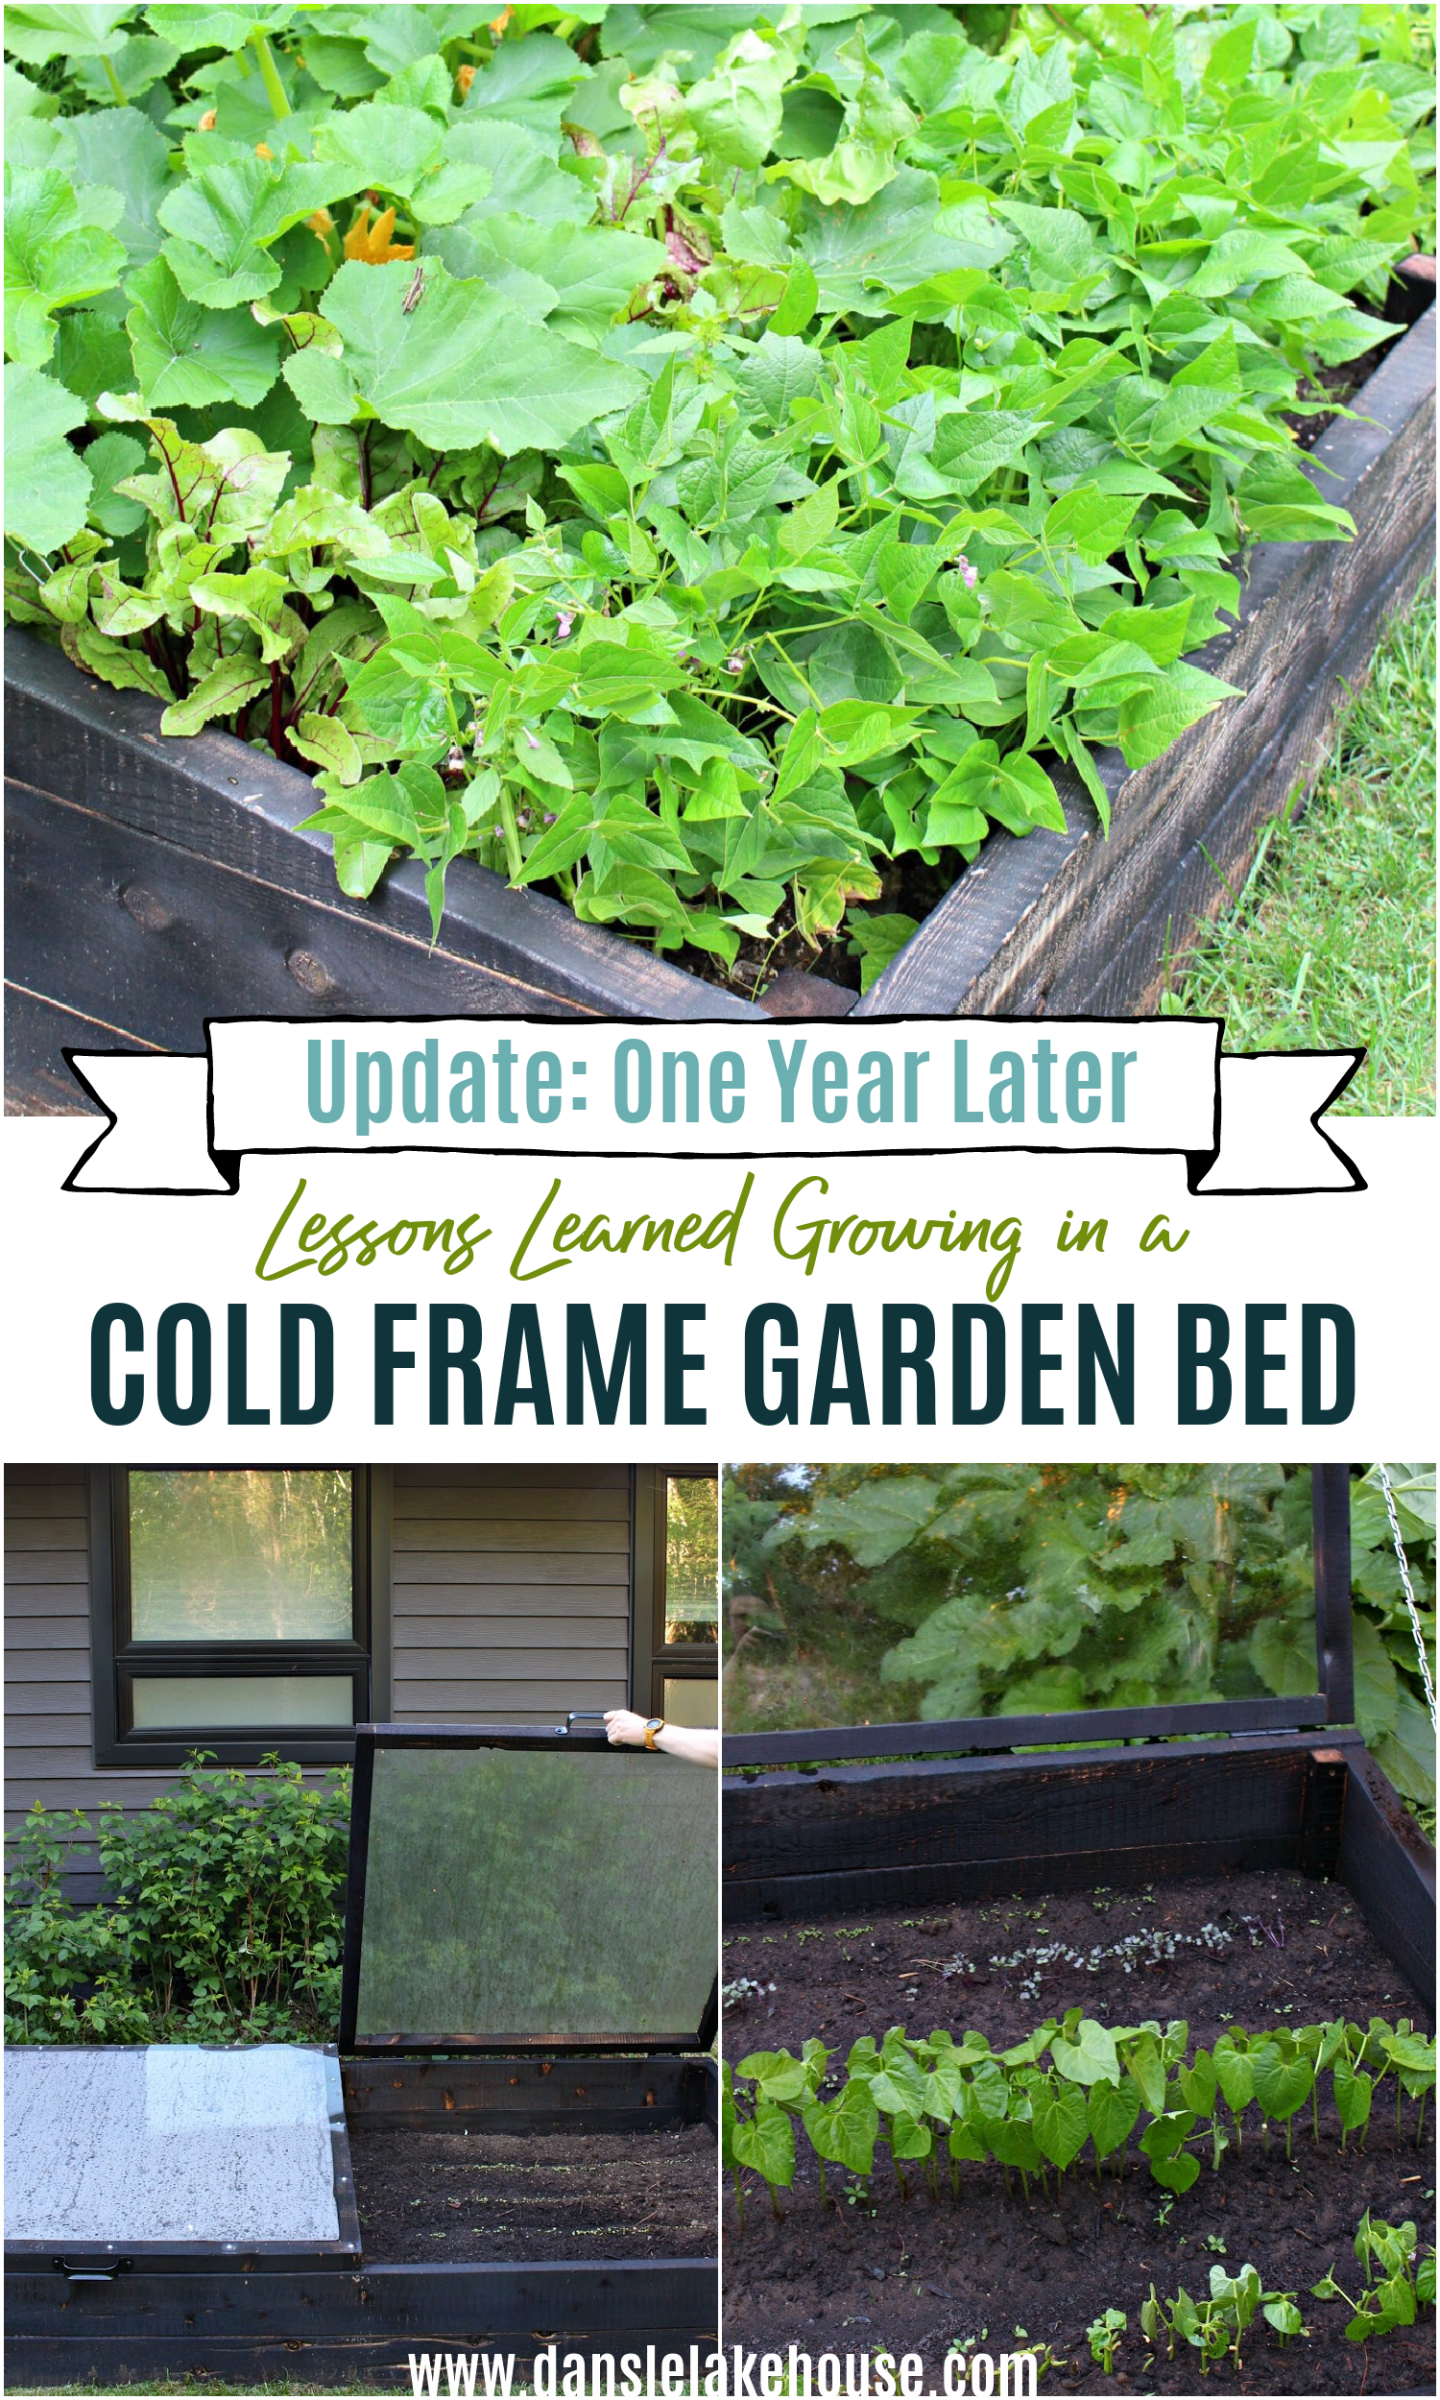 Lessons Learned Growing in a Cold Frame Garden Bed